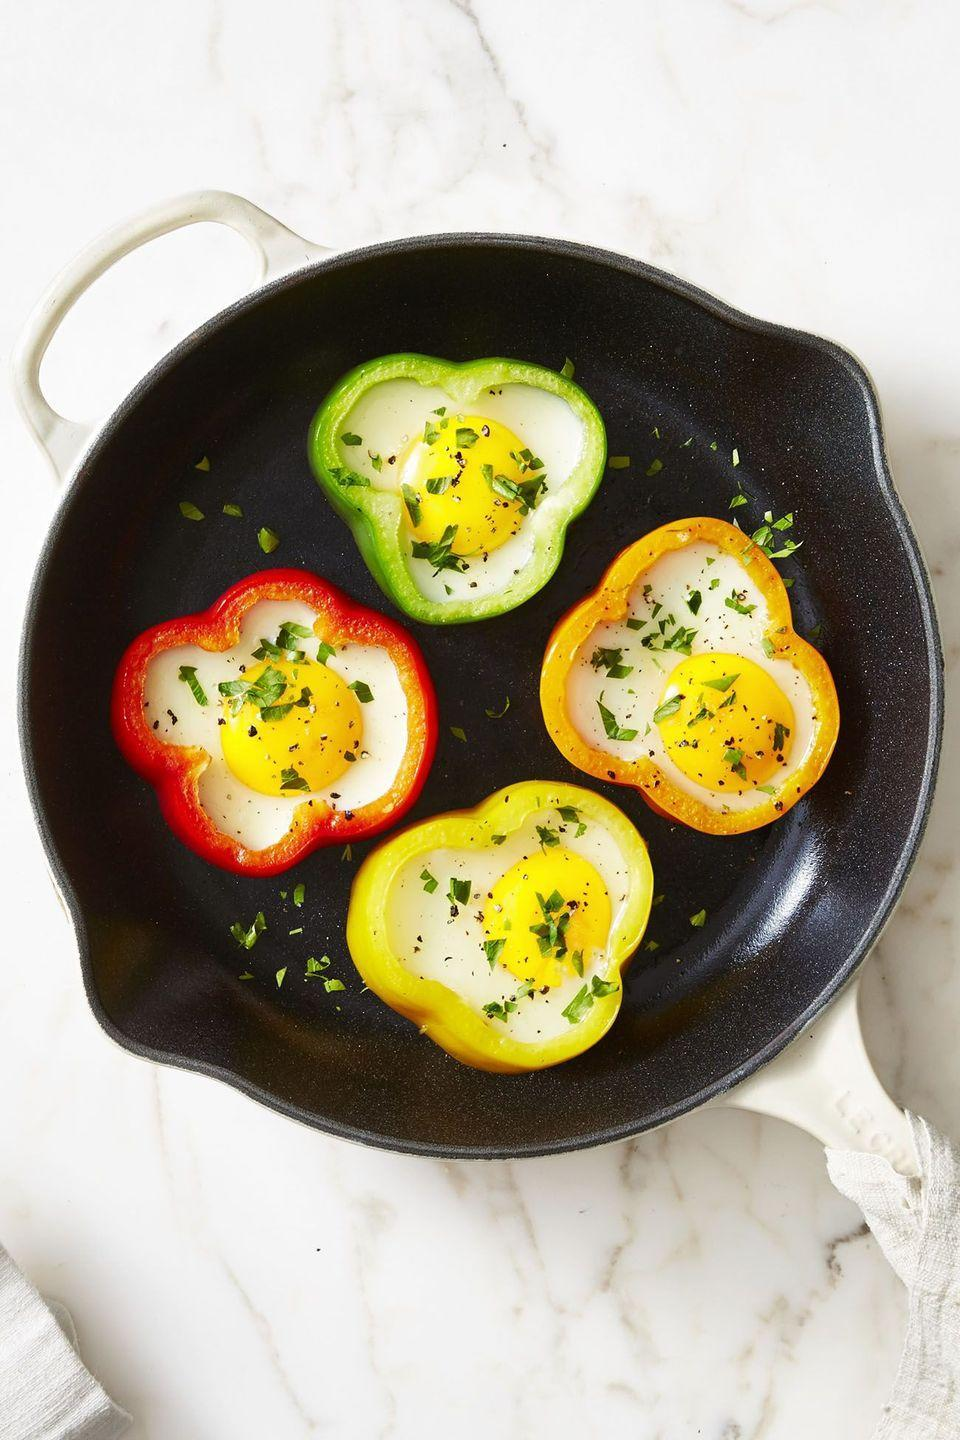 """<p>Start your morning on a cheerful note with these cute and colorful egg bites.</p><p><em><a href=""""https://www.goodhousekeeping.com/food-recipes/a42847/flower-power-sunny-side-eggs-recipe/"""" rel=""""nofollow noopener"""" target=""""_blank"""" data-ylk=""""slk:Get the recipe for Flower Power Sunny-Side Eggs »"""" class=""""link rapid-noclick-resp"""">Get the recipe for Flower Power Sunny-Side Eggs »</a></em></p>"""